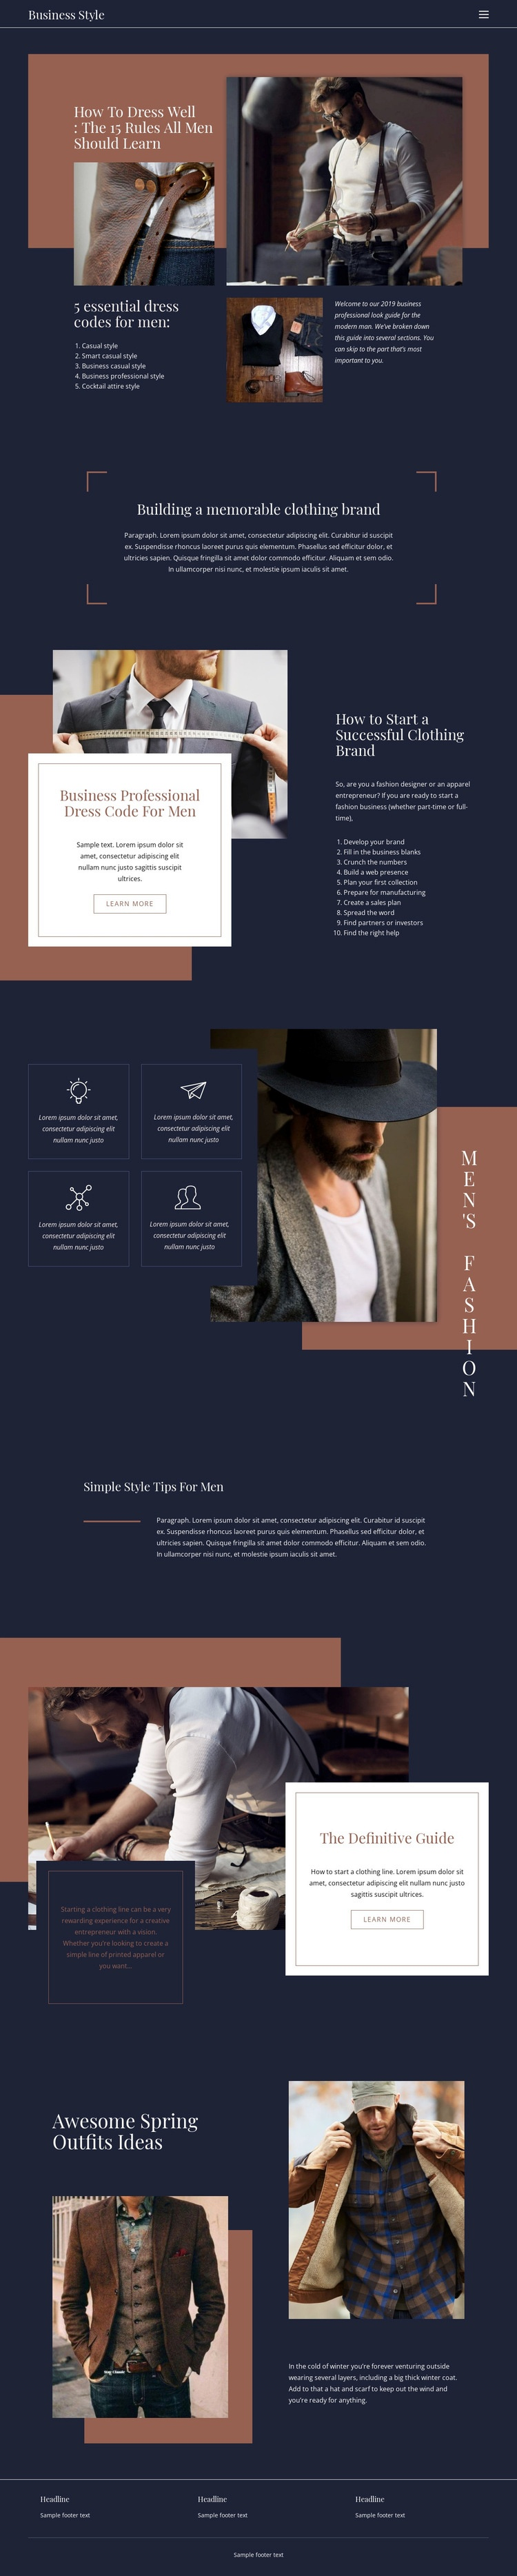 Winning rules of fashion Html Code Example